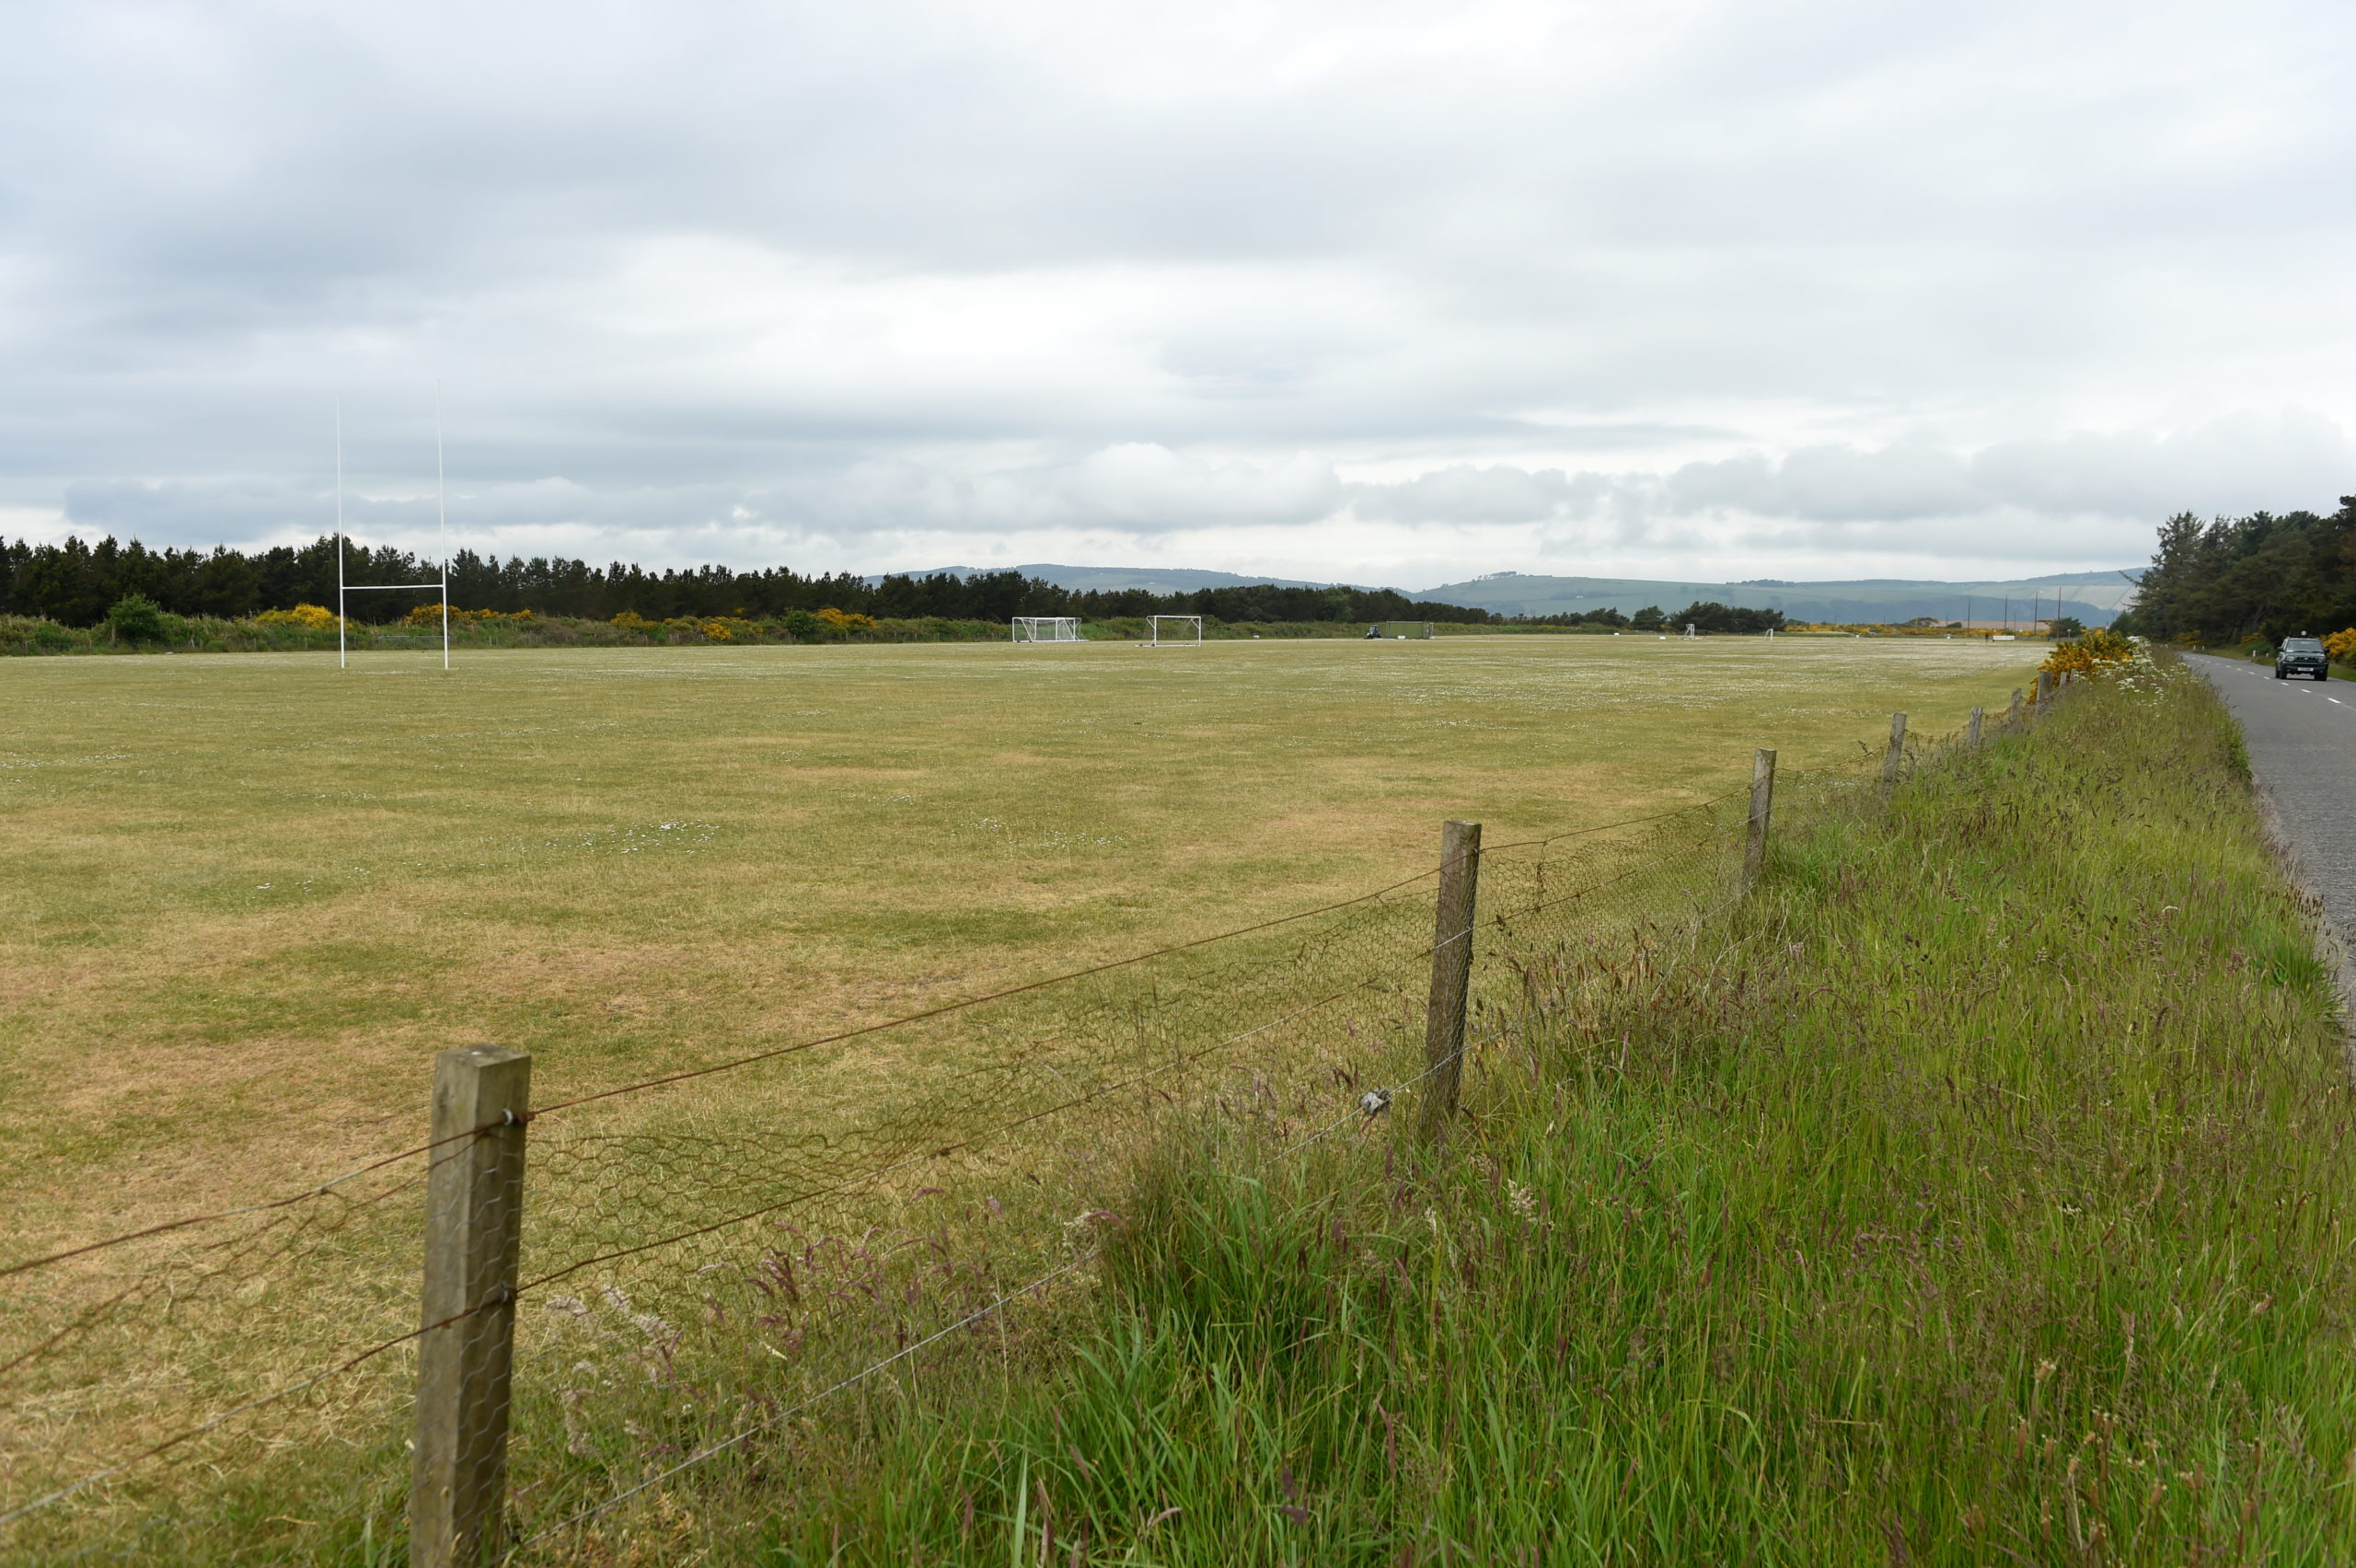 The military football pitches at Fort George near Inverness used by Caley Thistle as the club's training ground.